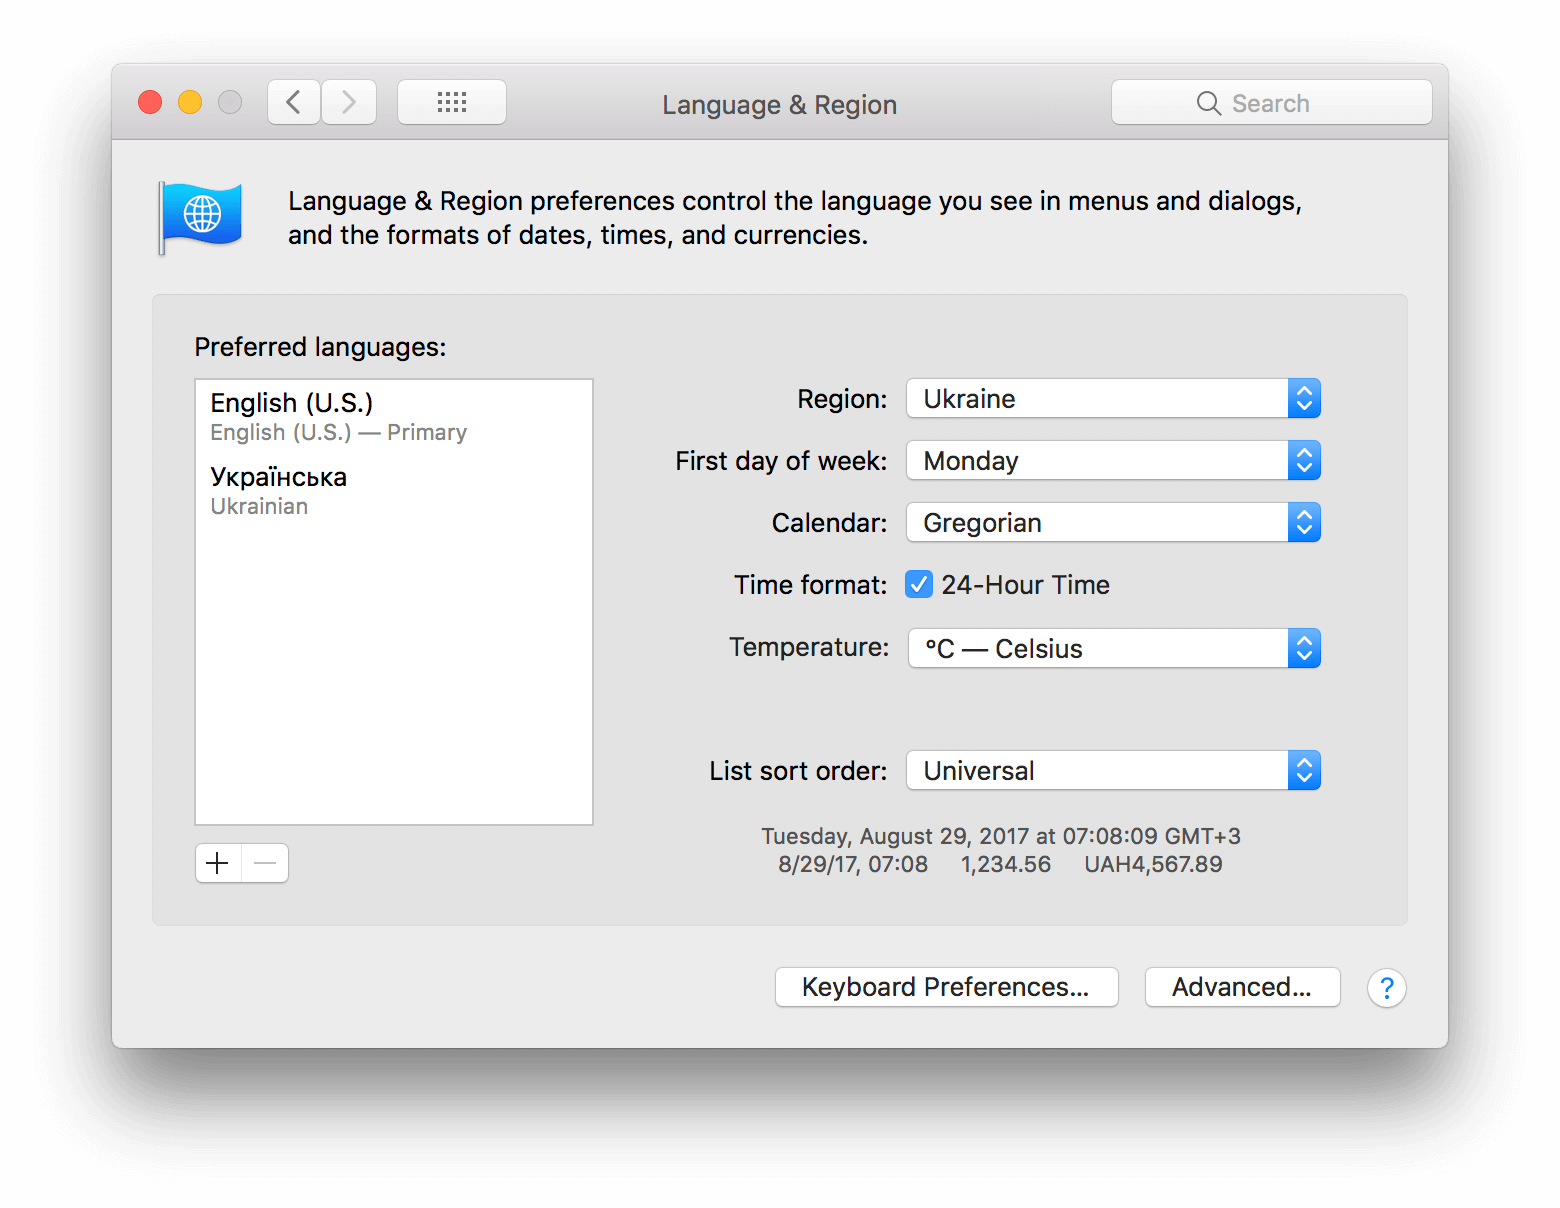 Language & Region macOS preferences